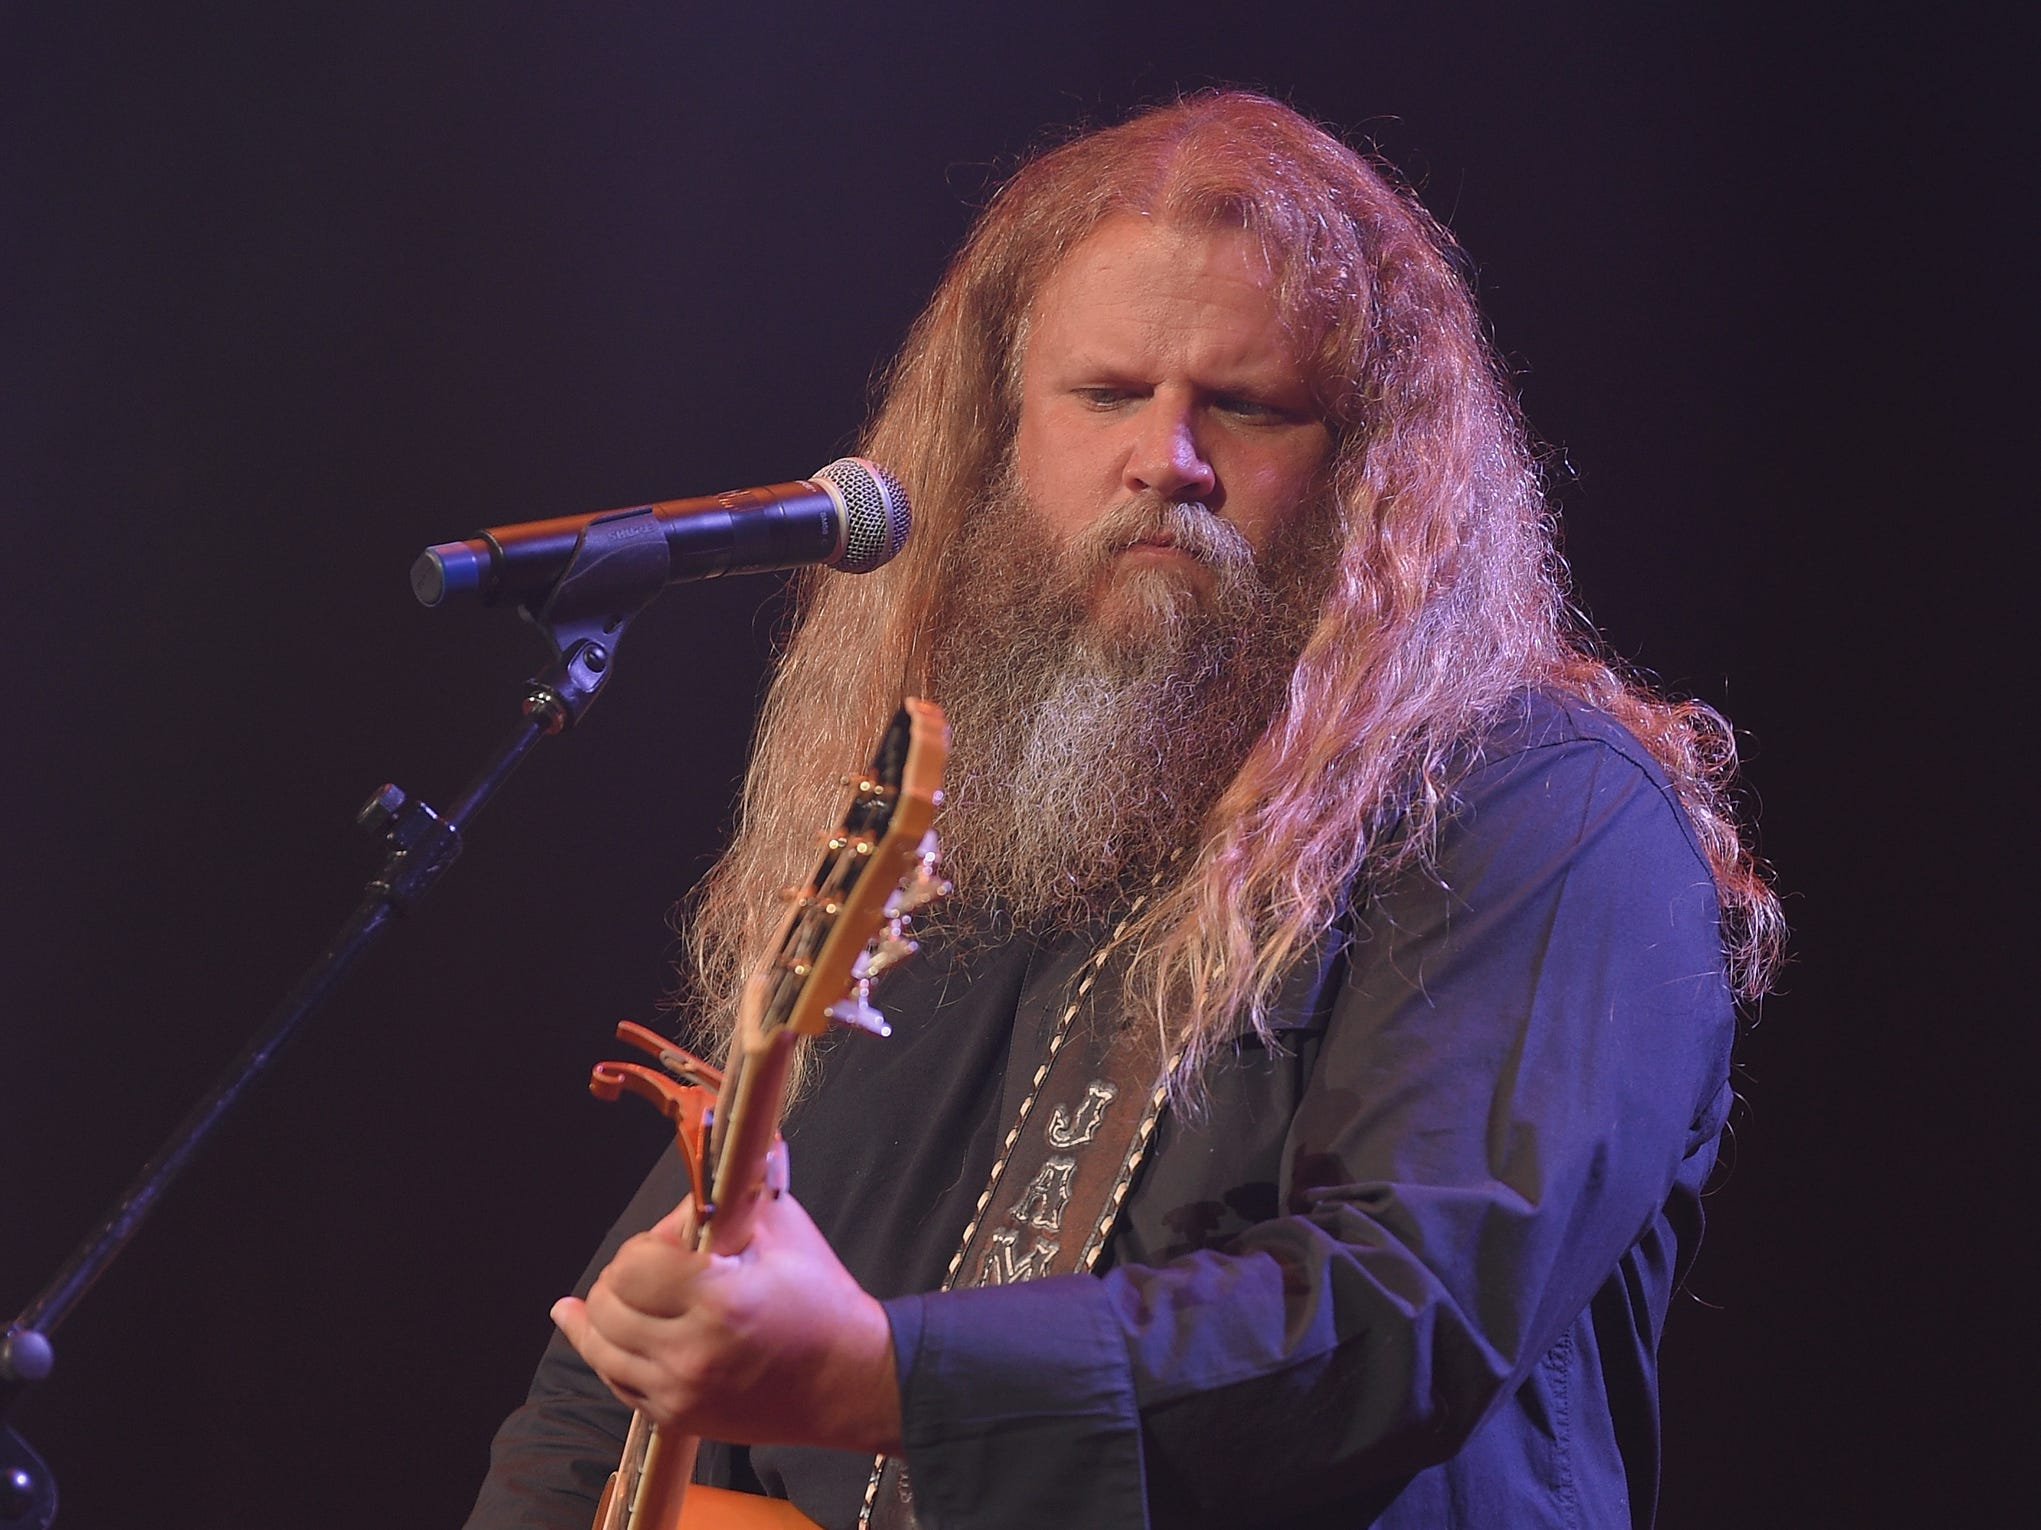 NASHVILLE, TN - SEPTEMBER 19:  Jamey Johnson performs onstage at the Nashville Songwriters Awards 2018 at Ryman Auditorium on September 19, 2018 in Nashville, Tennessee.  (Photo by Jason Kempin/Getty Images) ORG XMIT: 775213235 ORIG FILE ID: 1036211594